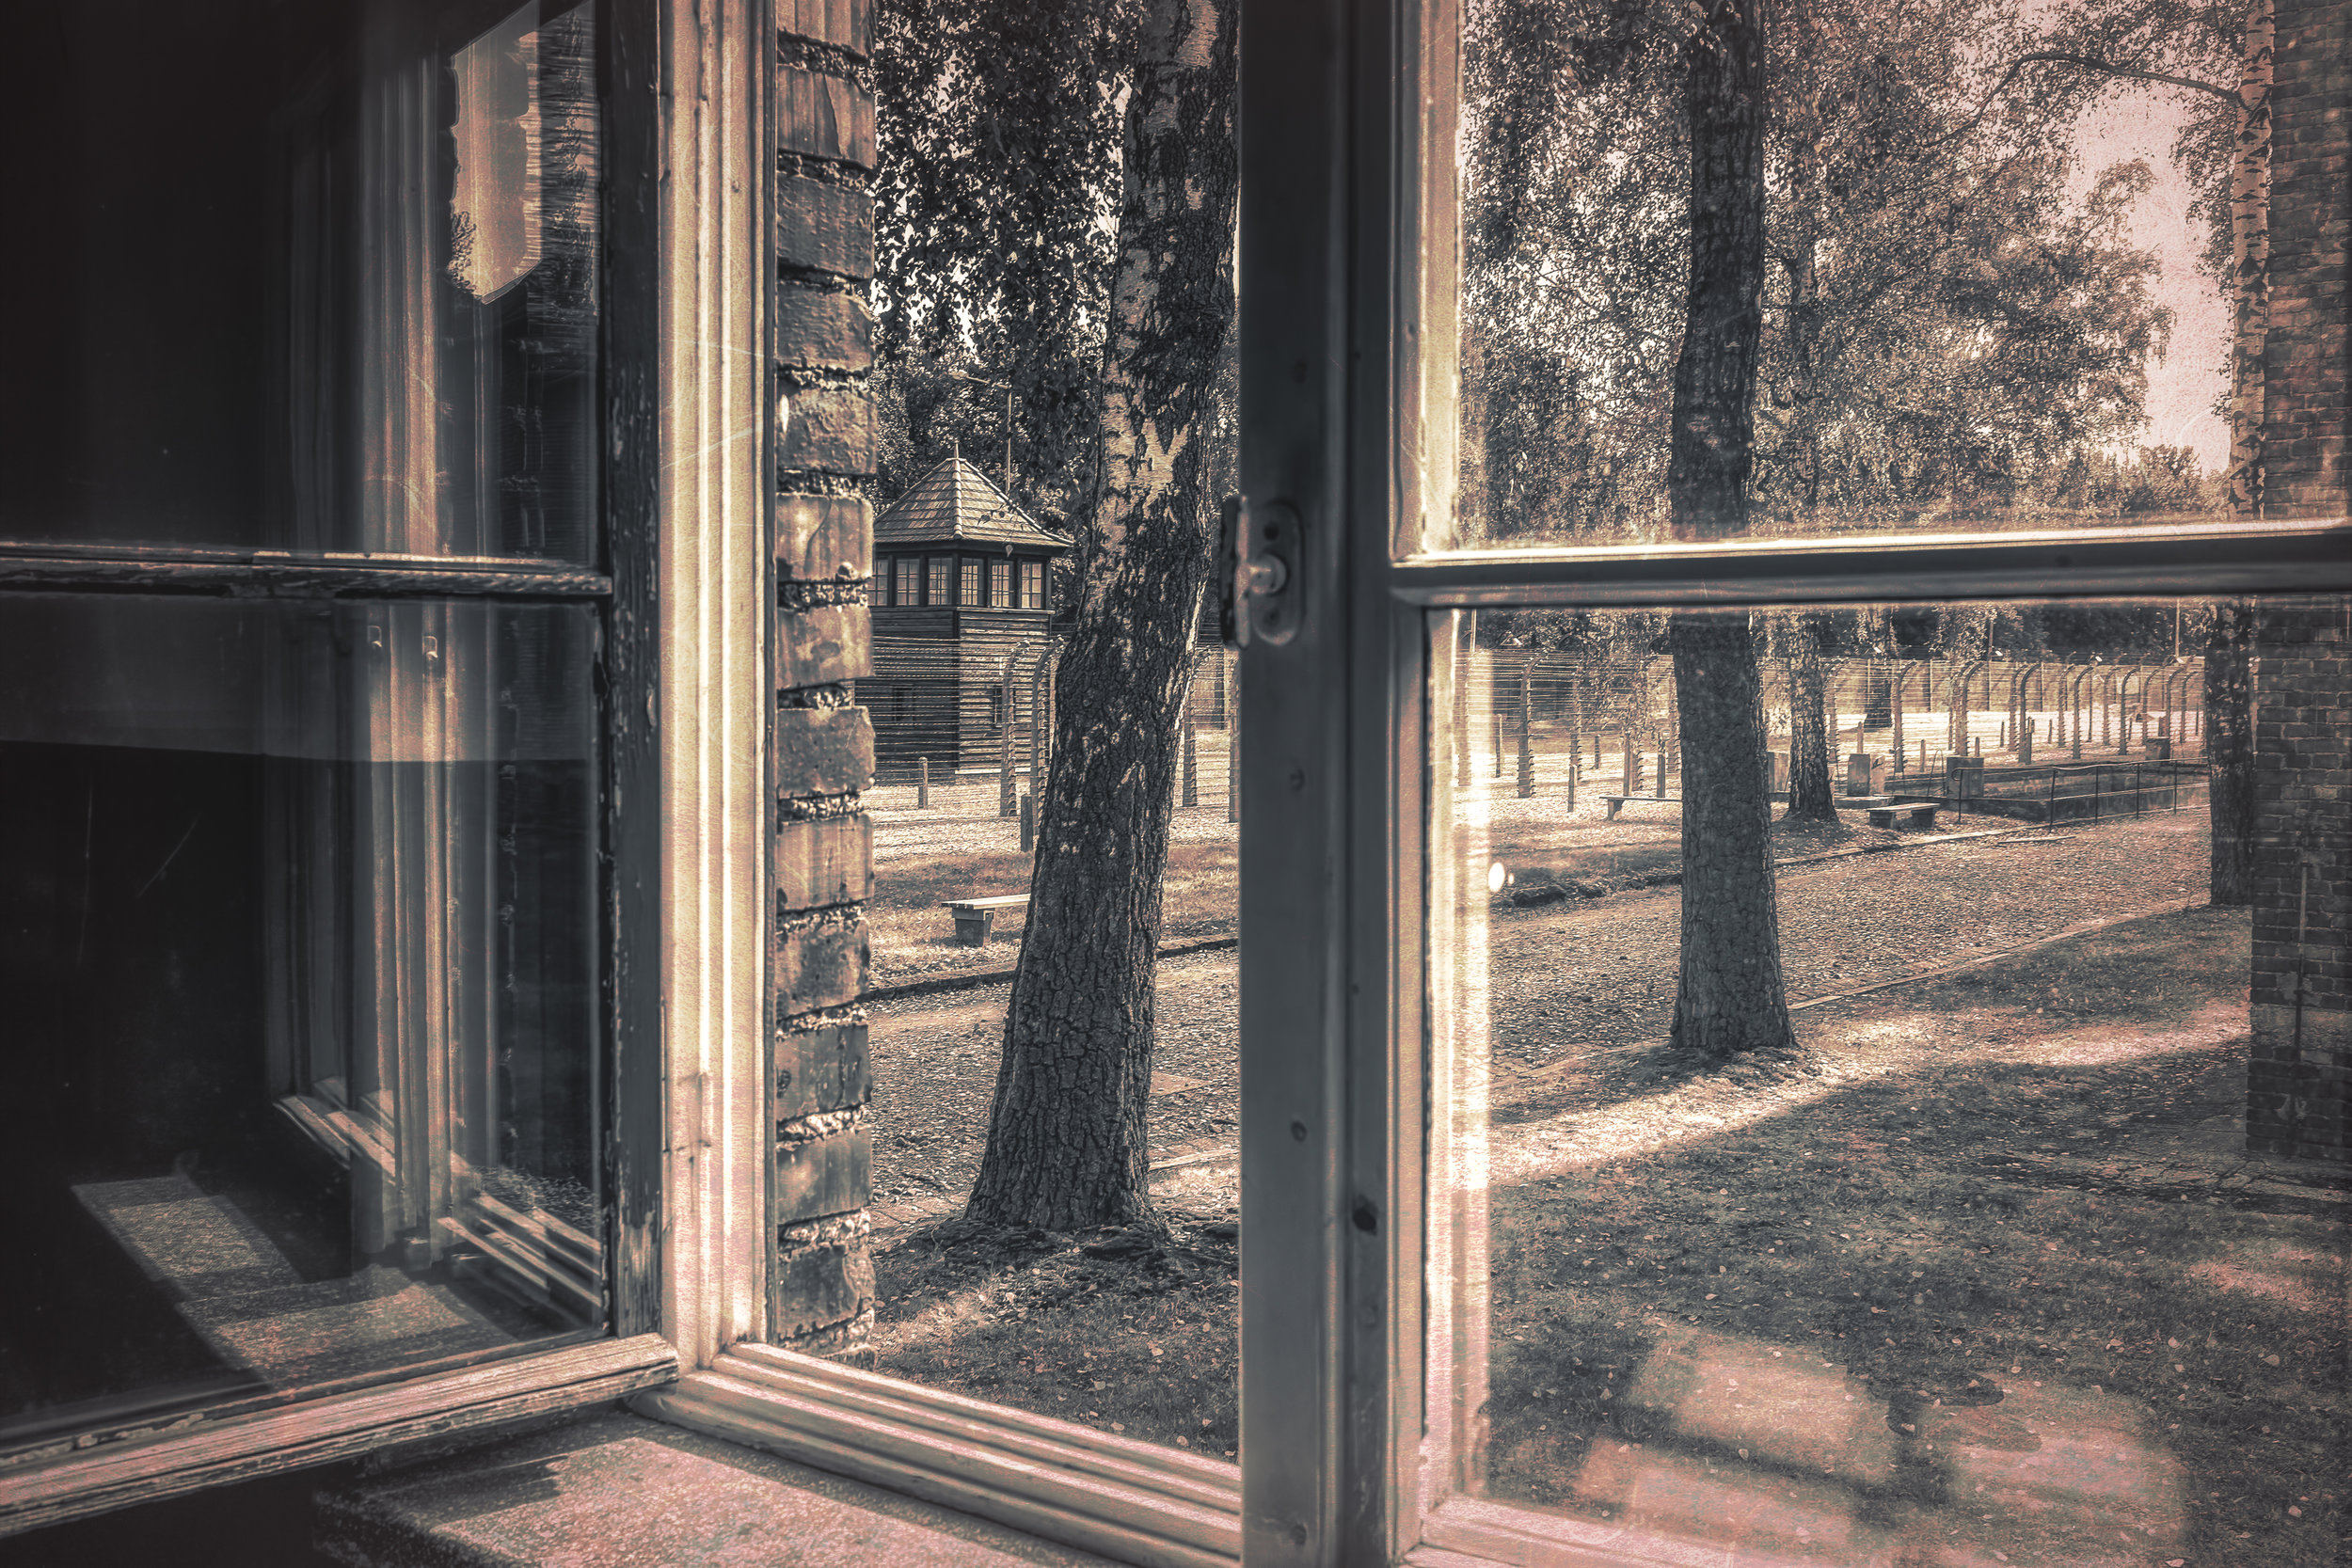 Through the Open Window - Auschwitz I Concentration Camp - Fujifilm X100T, 1/60 @ f/8.0, ISO200, 23mm. See the poem Through the Open Window in the Poetry Section.